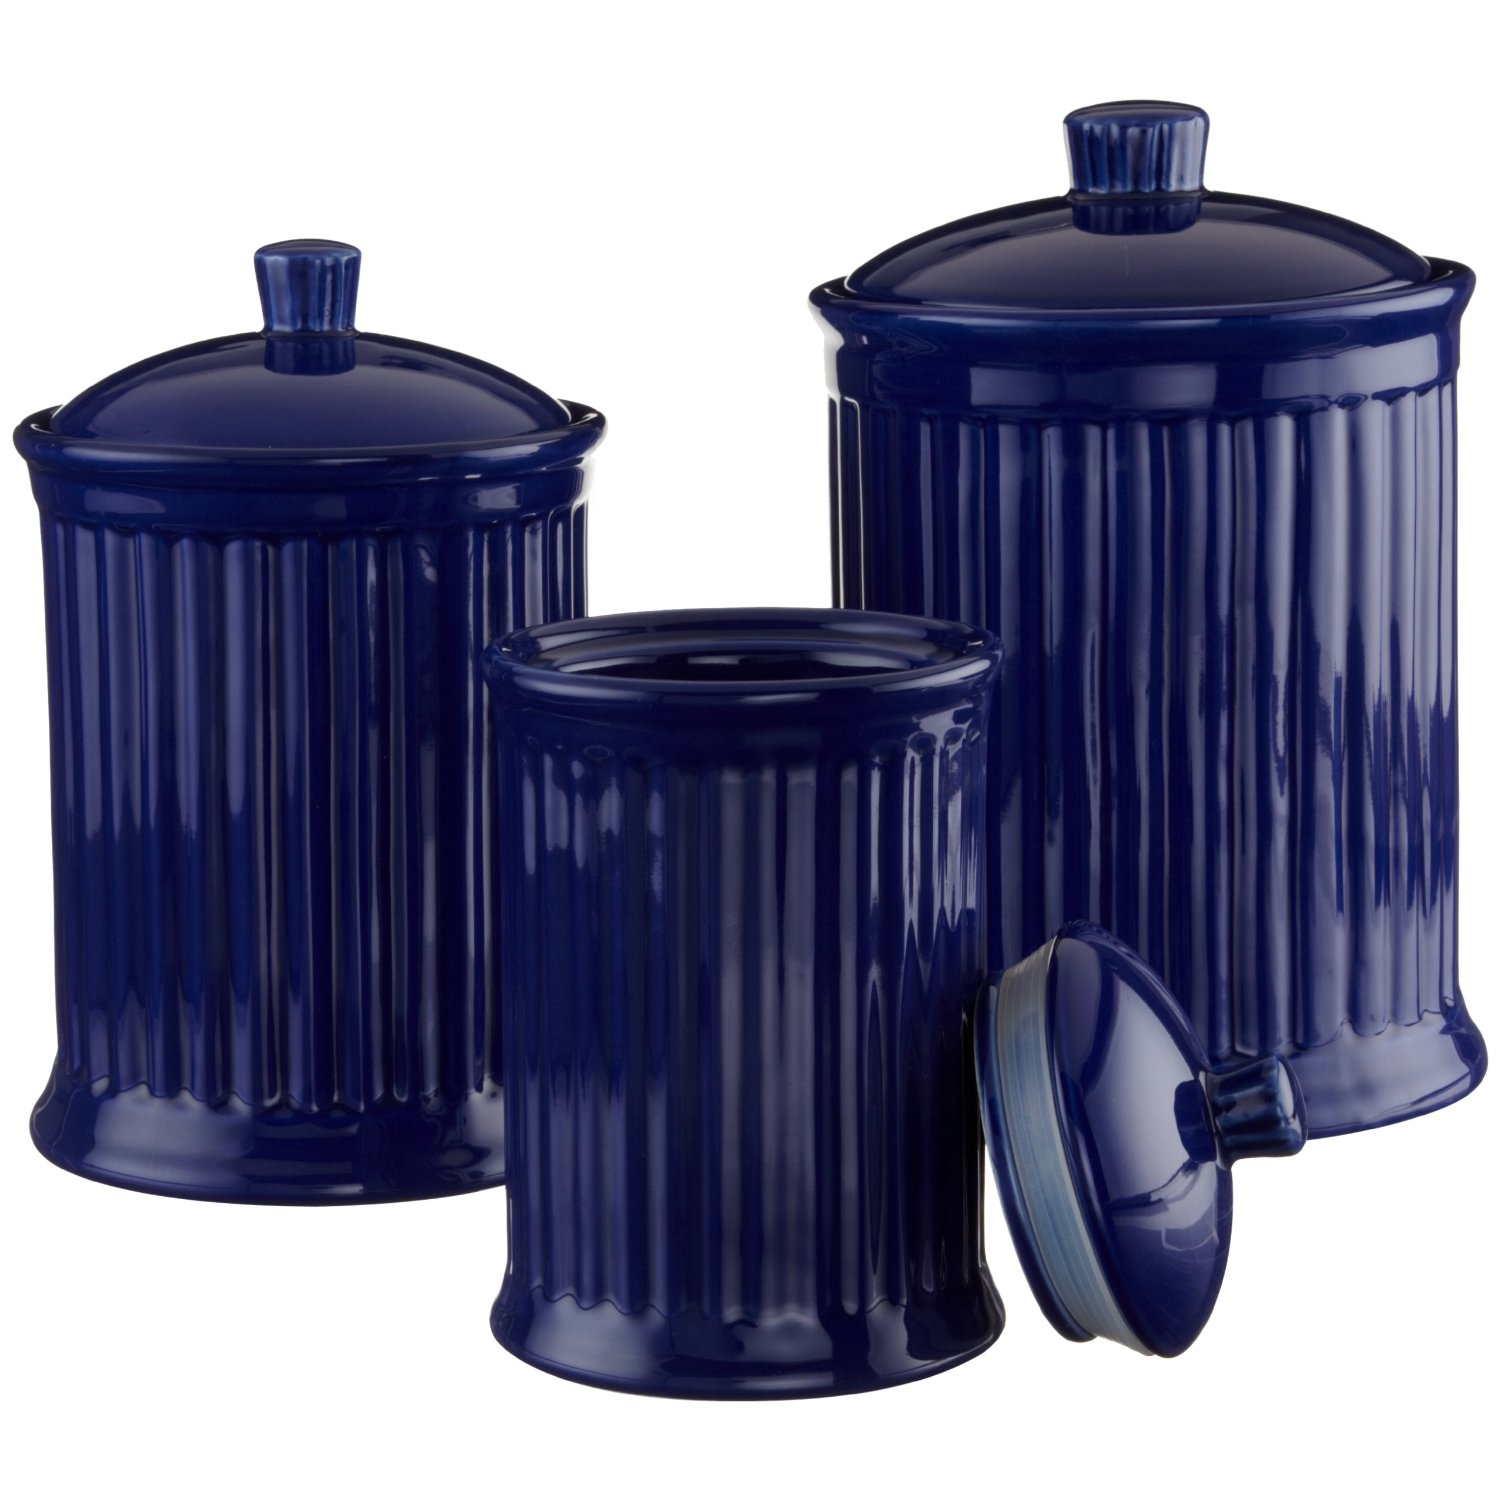 Permalink to Cobalt Blue Kitchen Canister Set